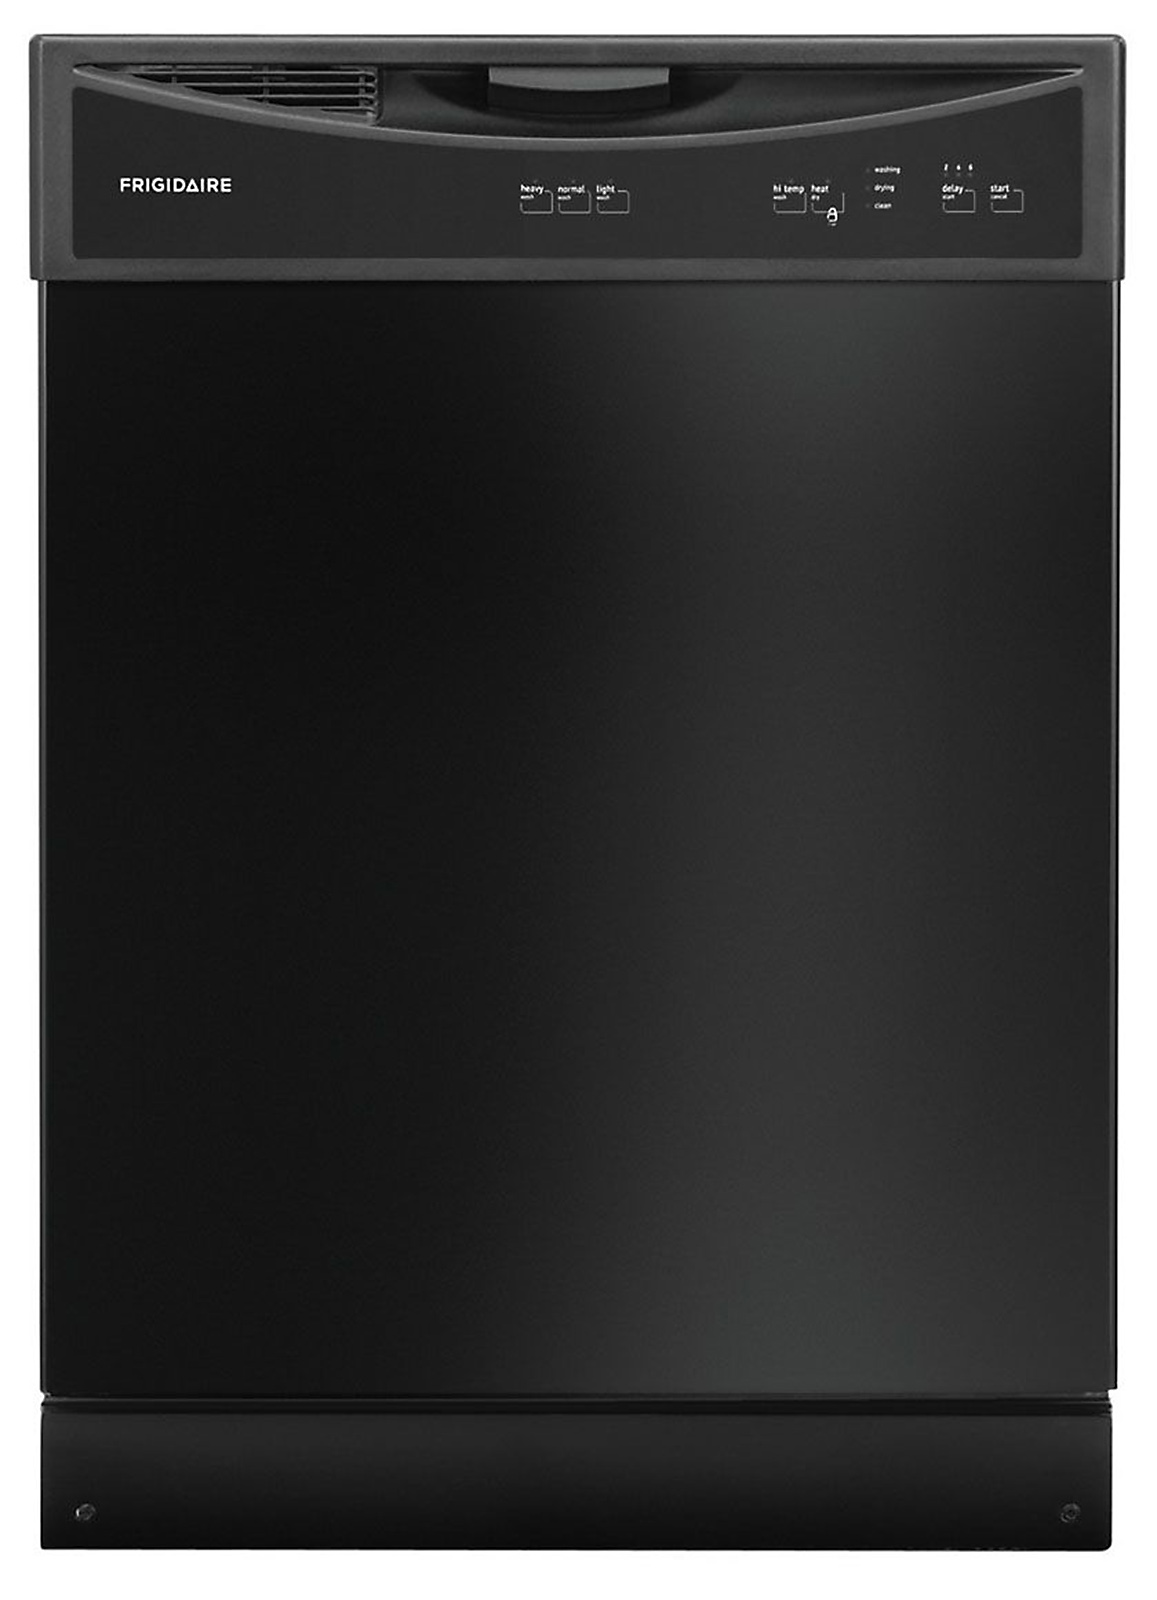 24 Outlet Frigidaire Ffbd2406nb 24 Inch Black Built In